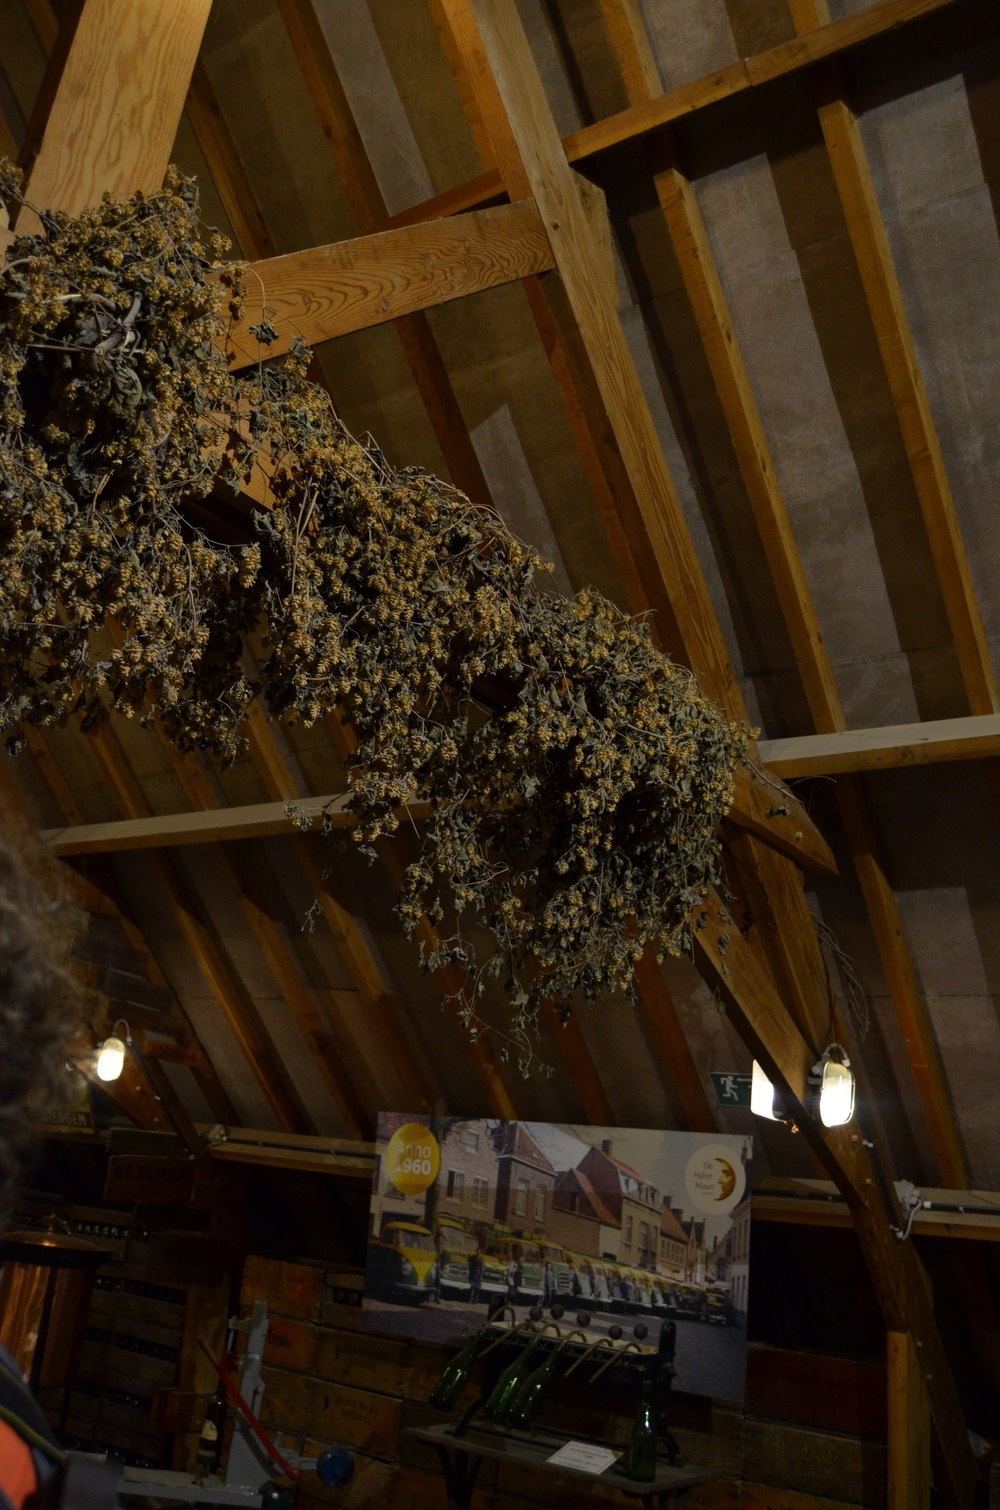 dried hops on the ceiling